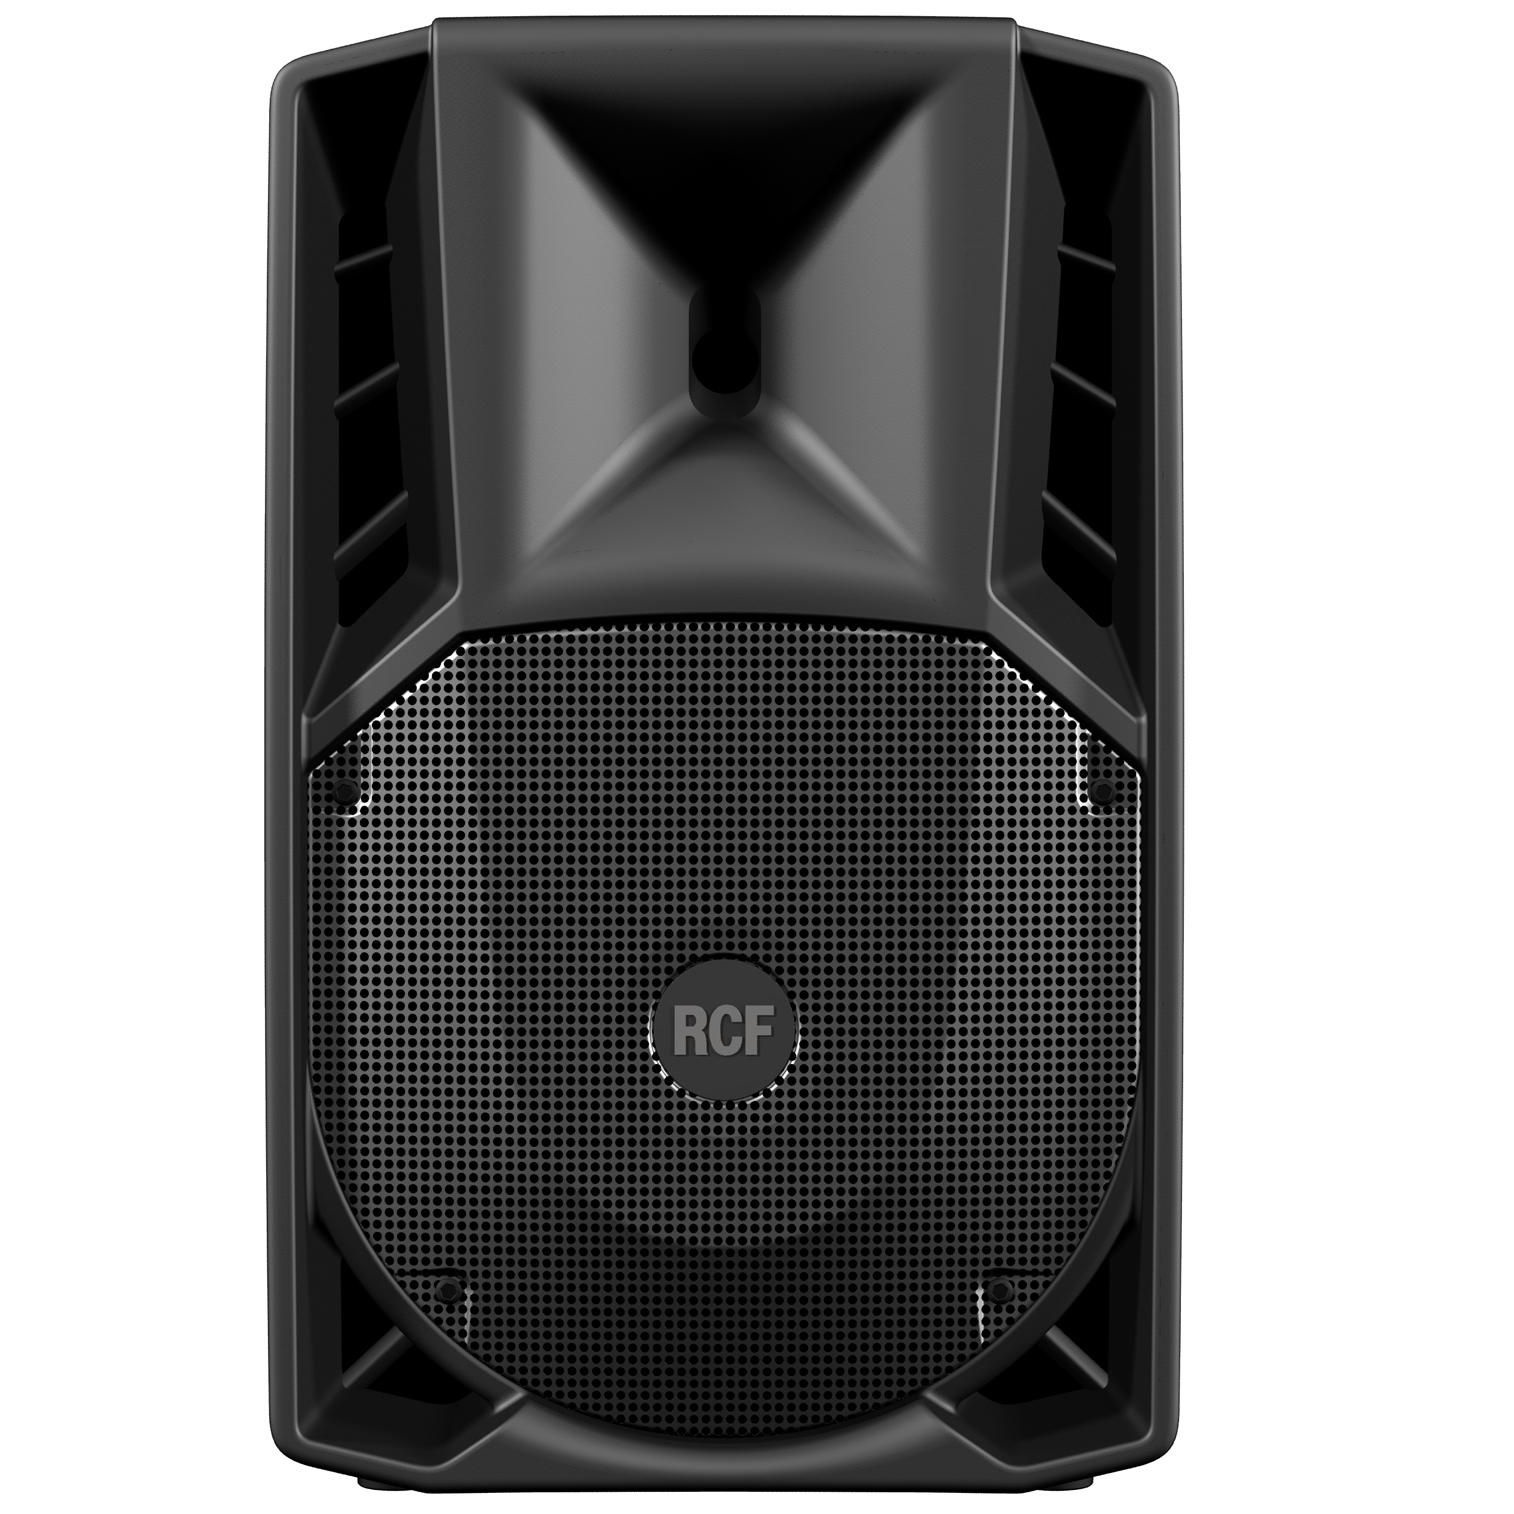 Hire Speakers For A Party